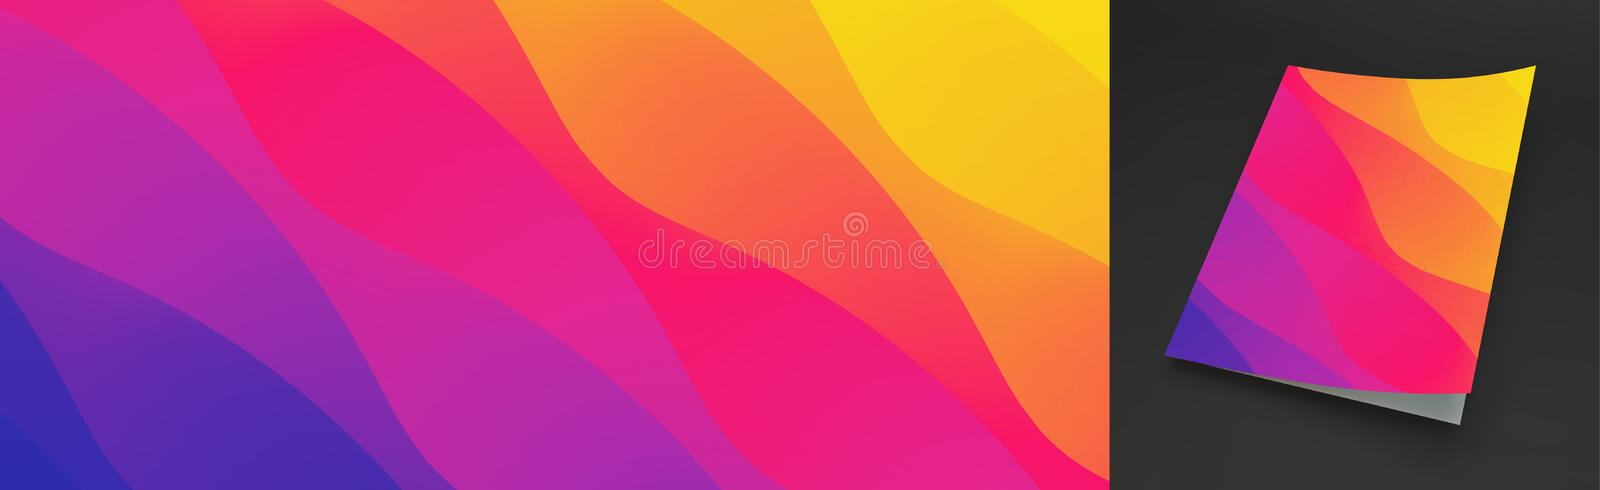 Abstract wavy background with color gradient. Trendy modern design. Applicable for placards, flyers, banners, book covers, stock illustration